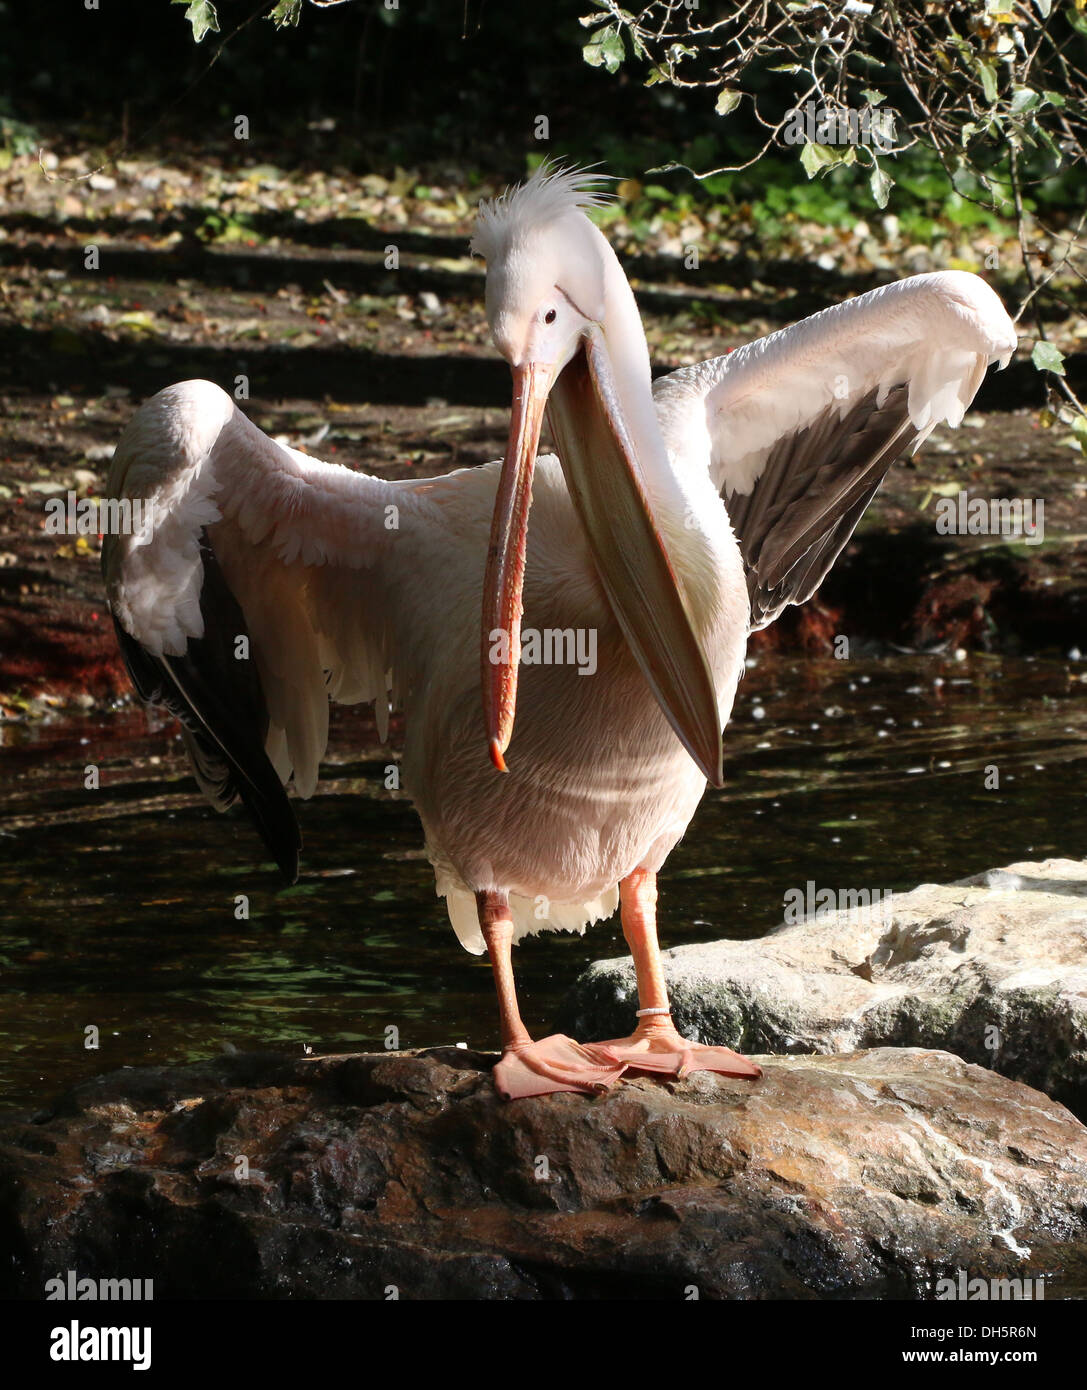 Great White Pelican (Pelecanus onocrotalus) flapping wings while preening Stock Photo